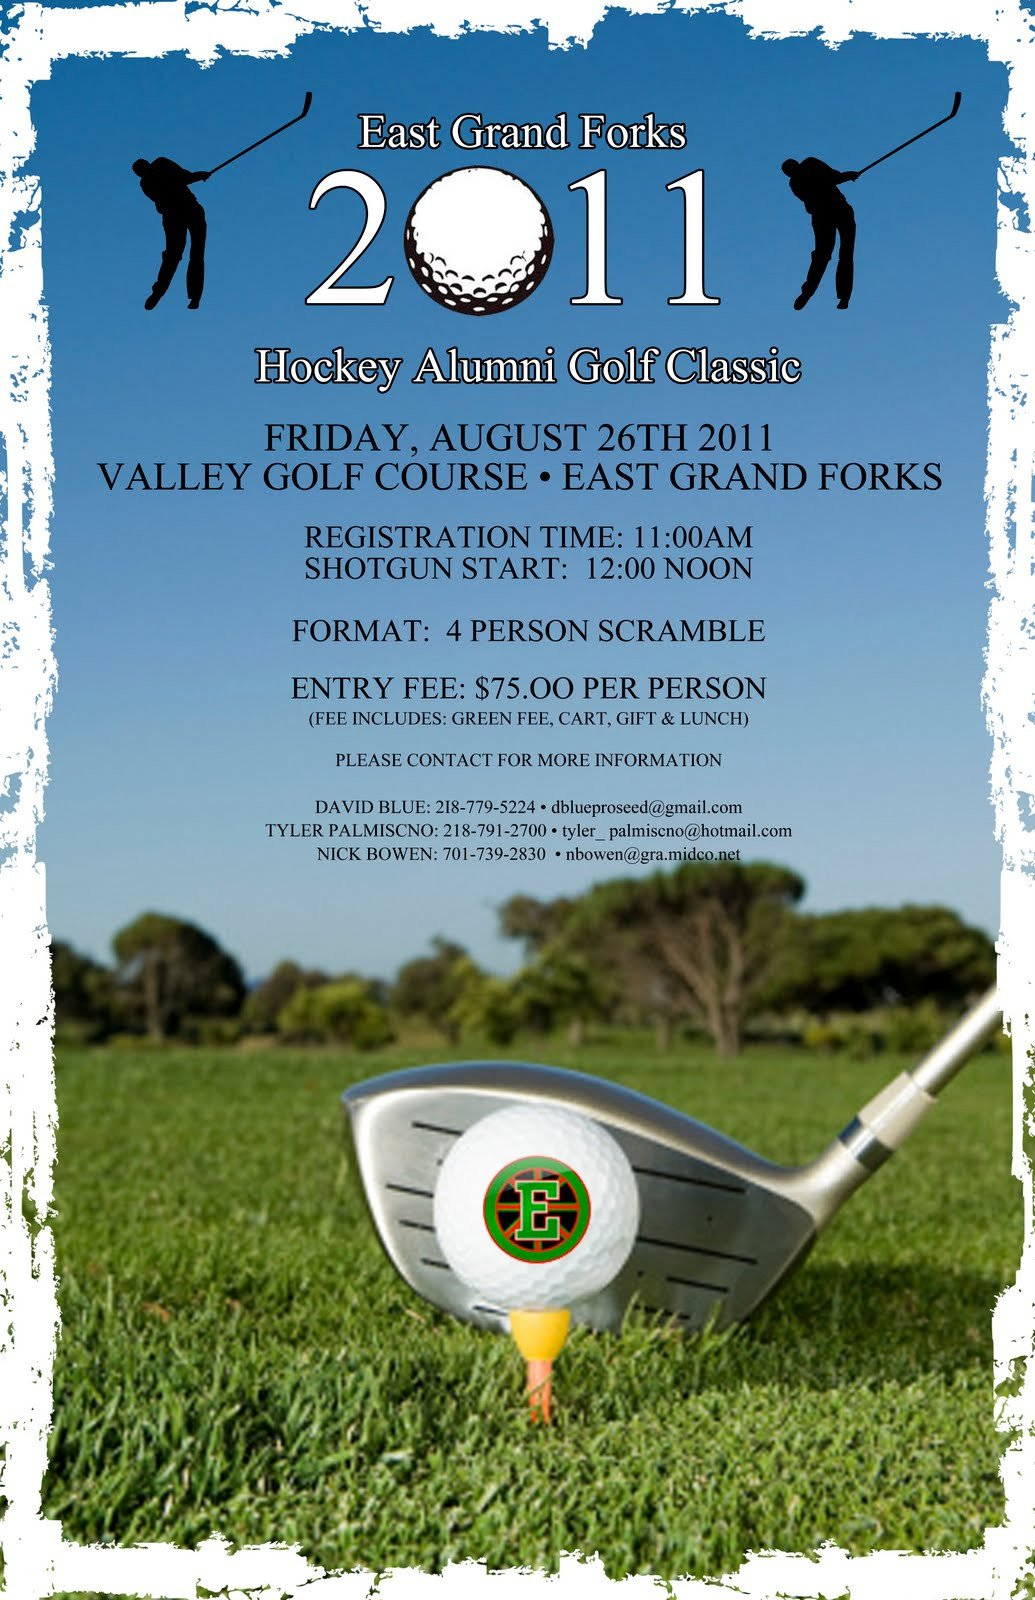 Golf tournament Flyer Templates East Grand forks Greenwave Hockey Golf tournament